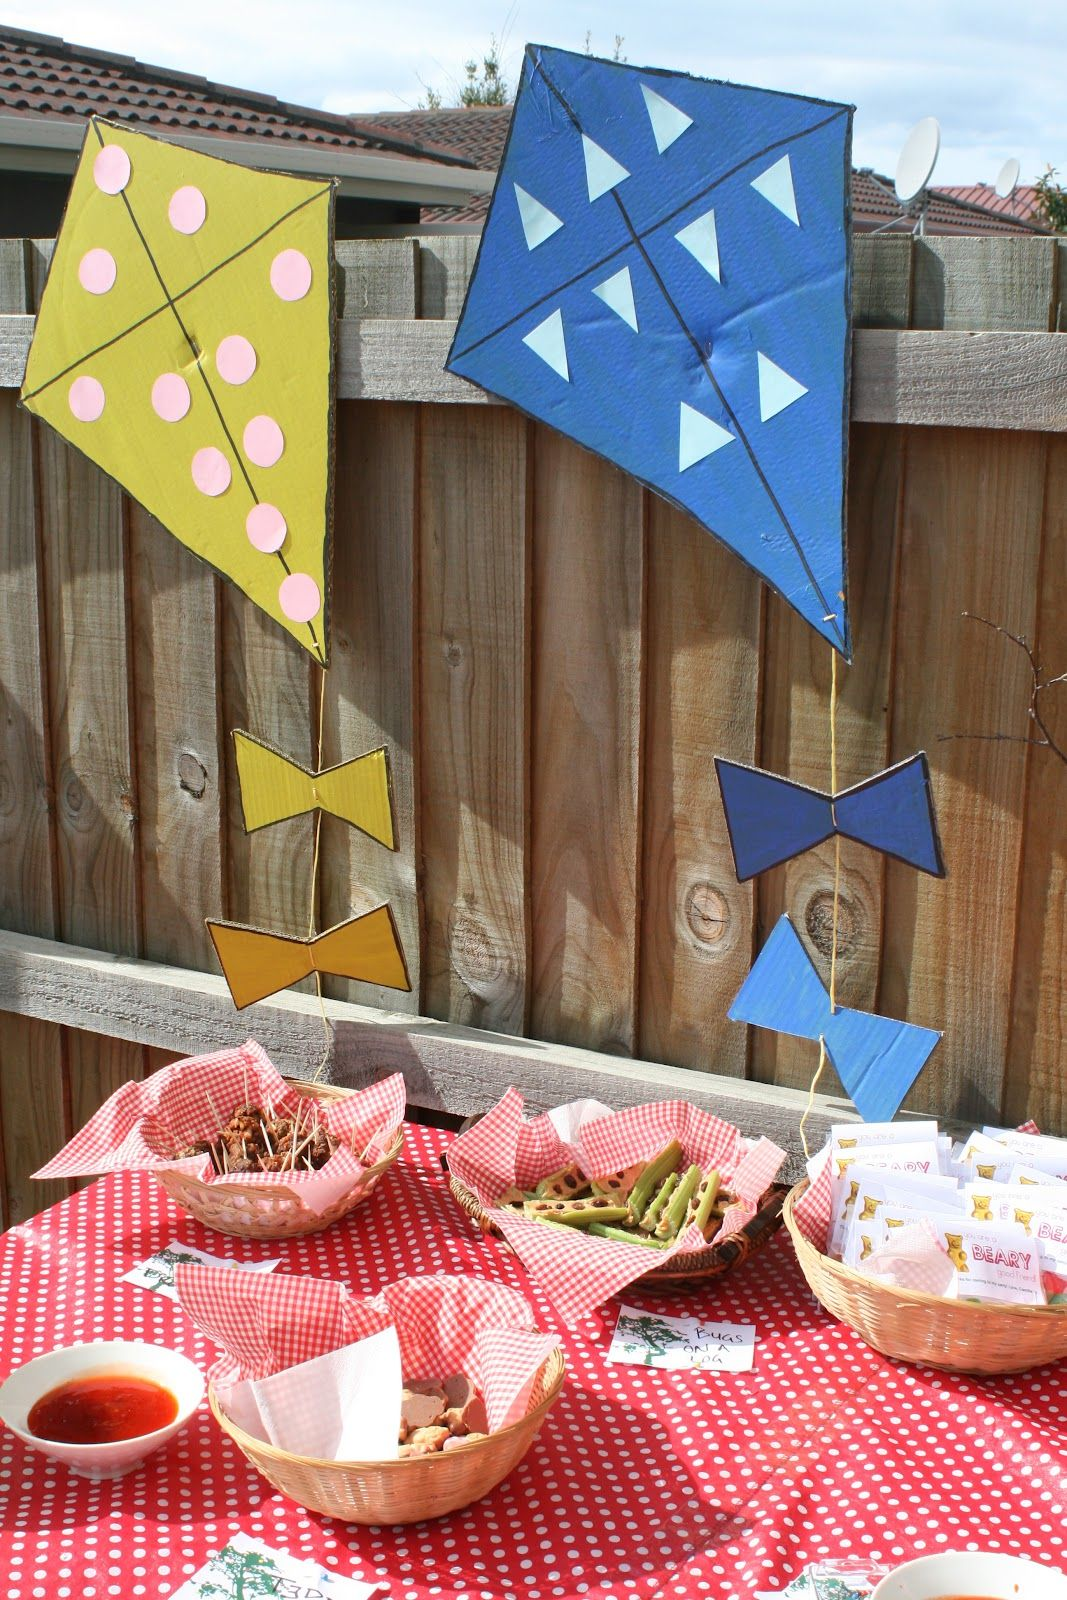 Picnic Themed Decorations Teddy Bears Picnic Decorations Kites Balloons Signs